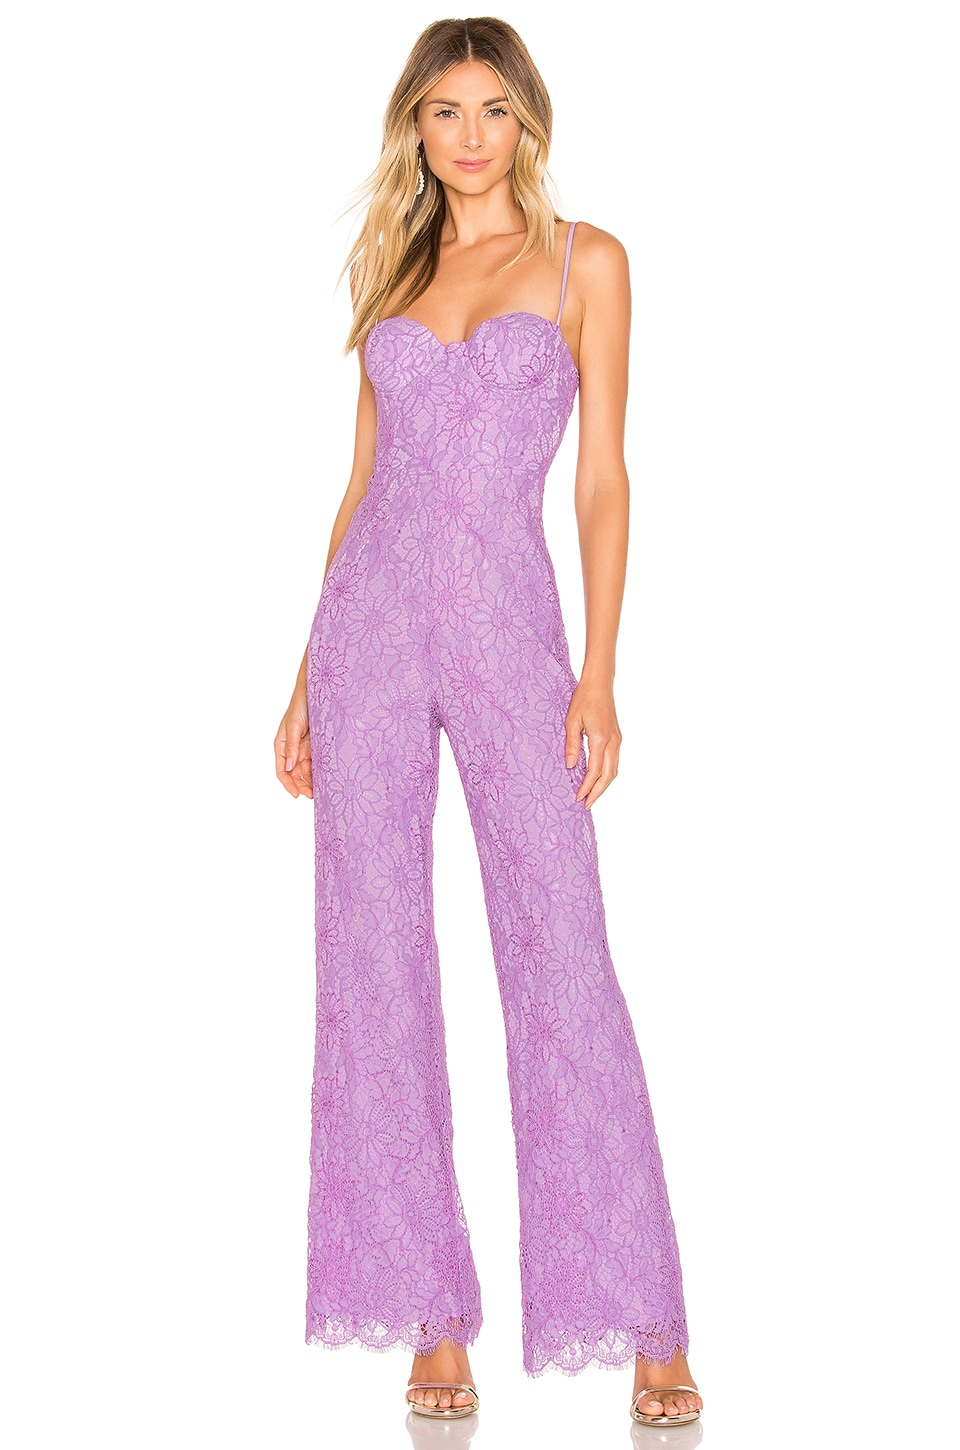 NBD x Naven Allie Jumpsuit in Lilac Purple